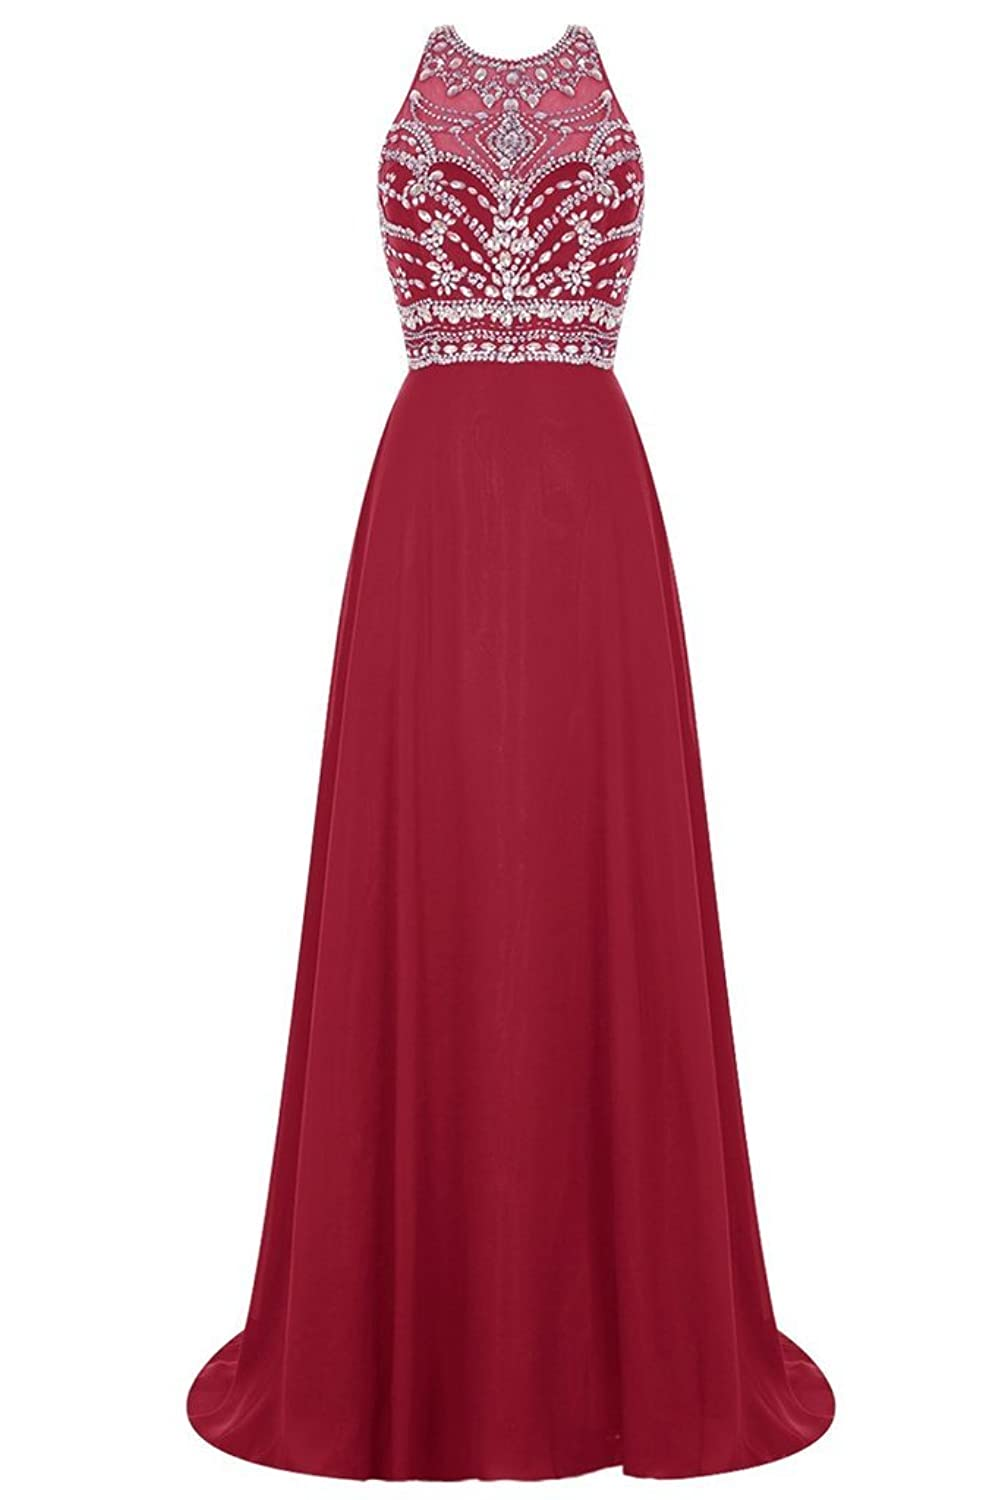 Charm Bridal Long Sexy Sequin Train Mother of Bride Women Party Dress with Slit -2-Dark Red